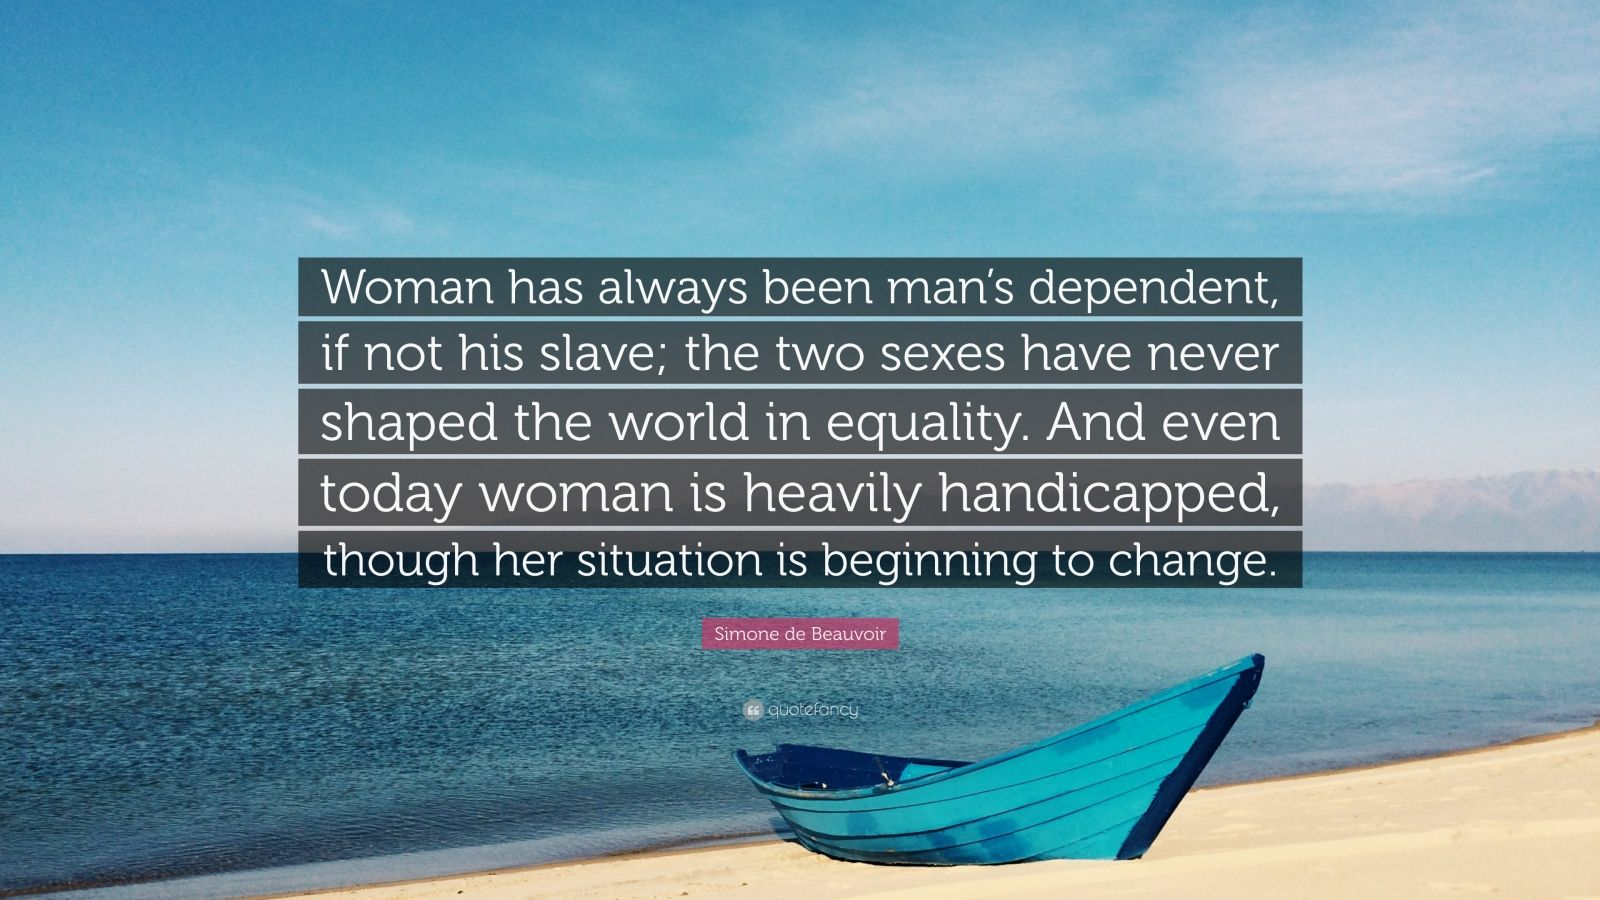 """a description of women been always mans dependent Independent woman syndrome going by definition 1 as well as the """"right woman"""" for the man you choose to give that honor to."""